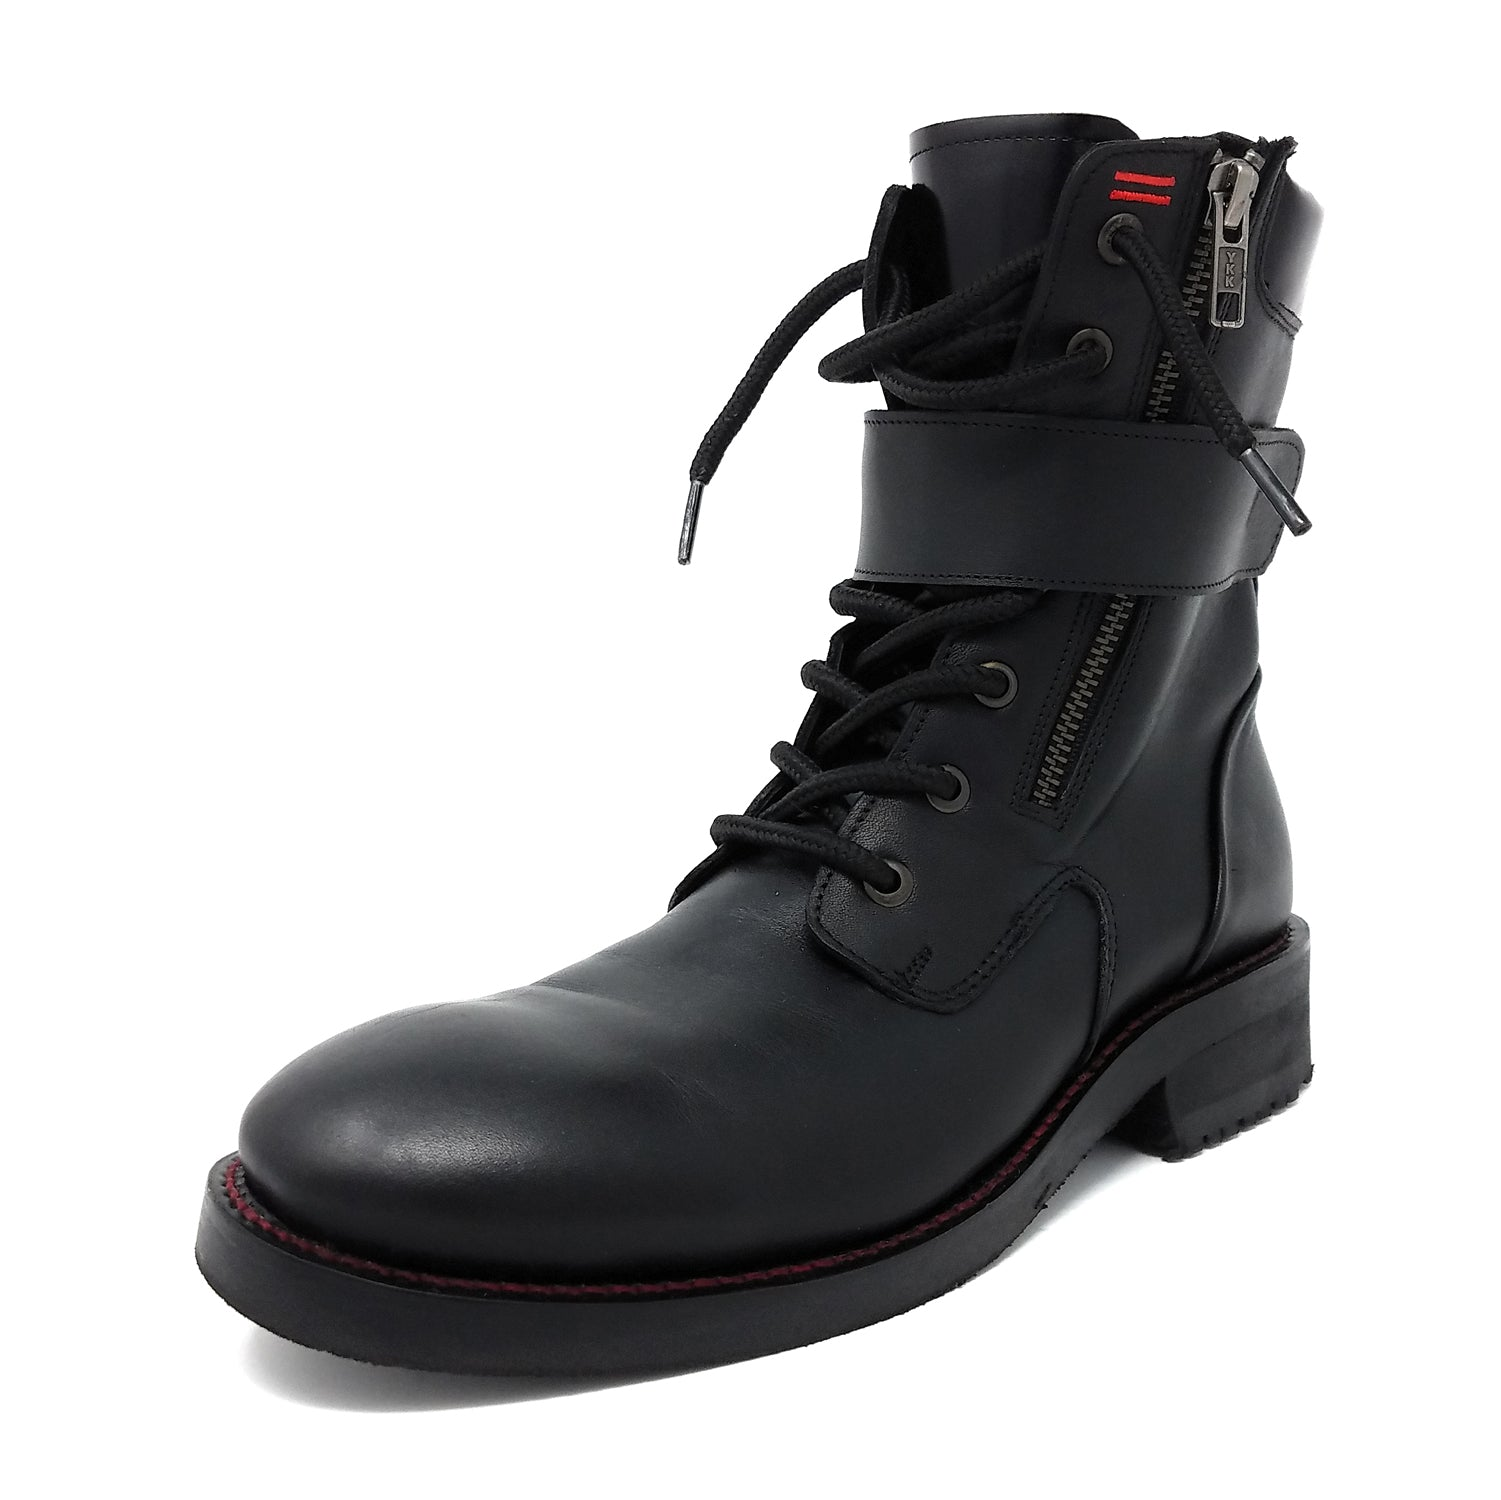 The Combat H8 Boots (PRE-ORDER ONLY) - NiK Kacy